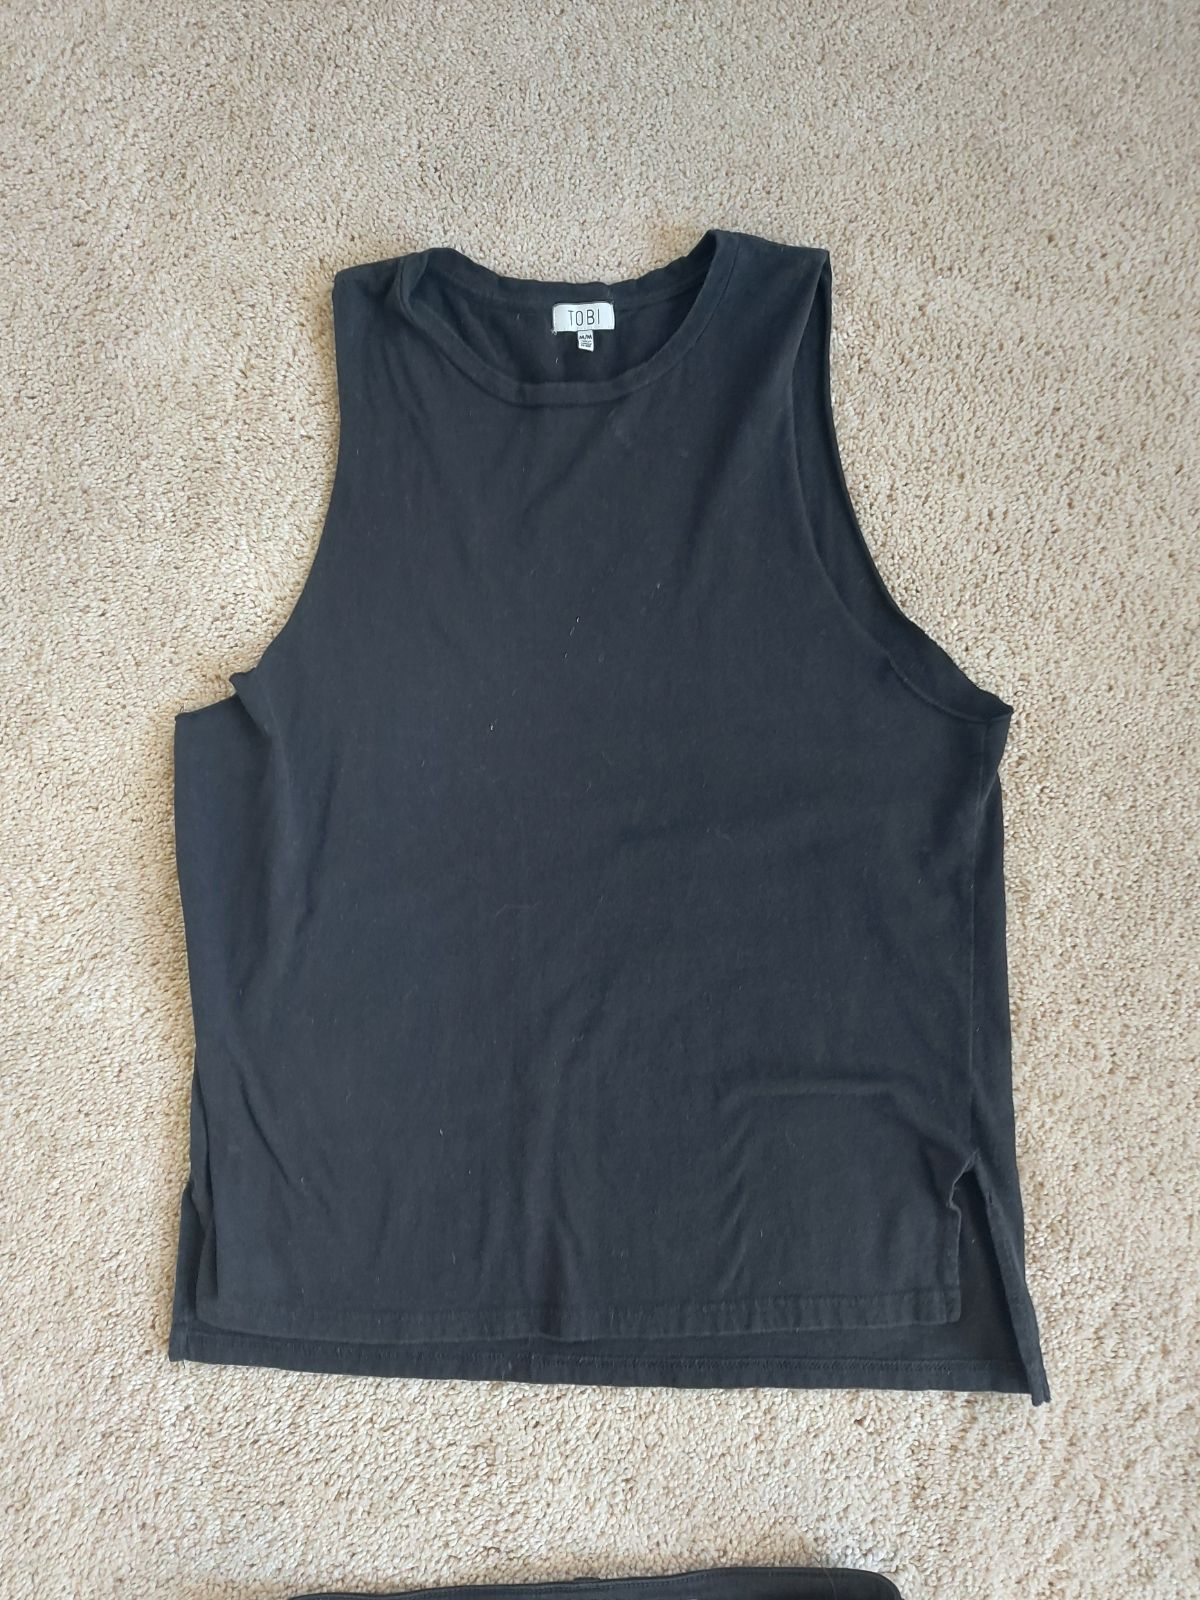 TOBI muscle arm hole top